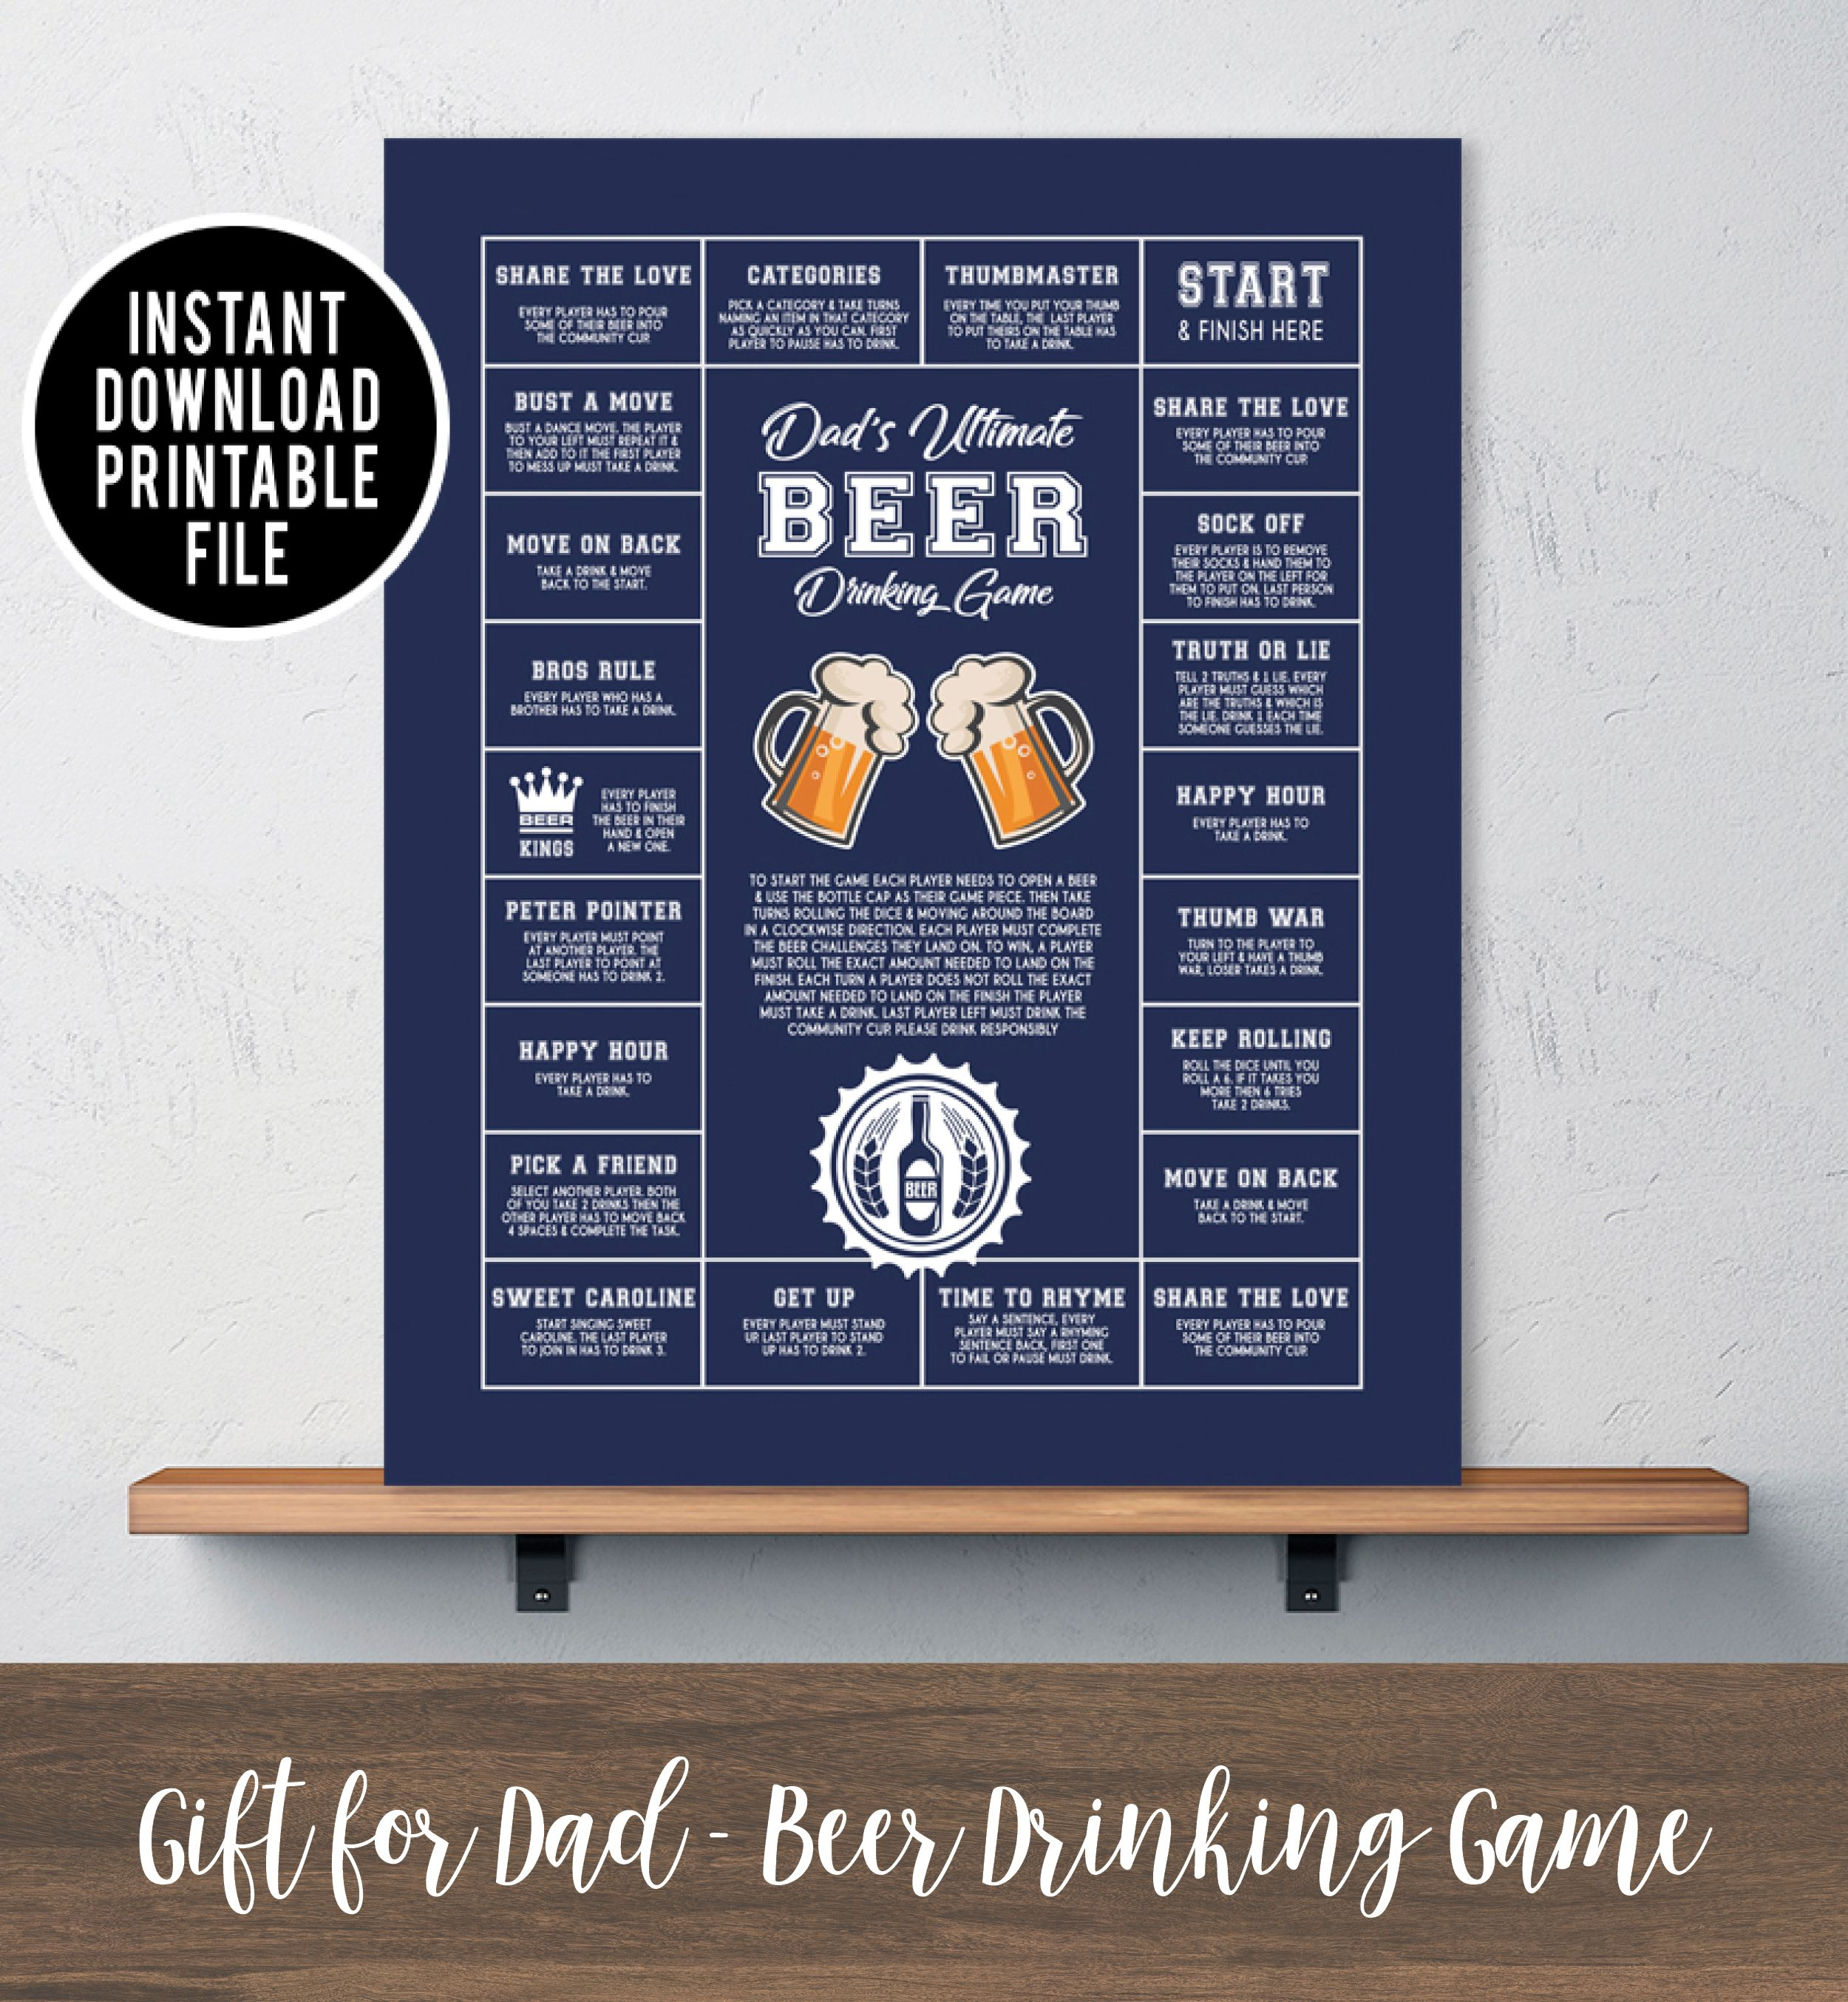 Fathers day gift ideas for dad. Birthday gift for dad. Gifts for Him Last minute gift idea Personalized Beer Drinking Game Printable art. INSTANT DOWNLOAD & Fathers day gift ideas for dad. Birthday gift for dad. Gifts for Him ...